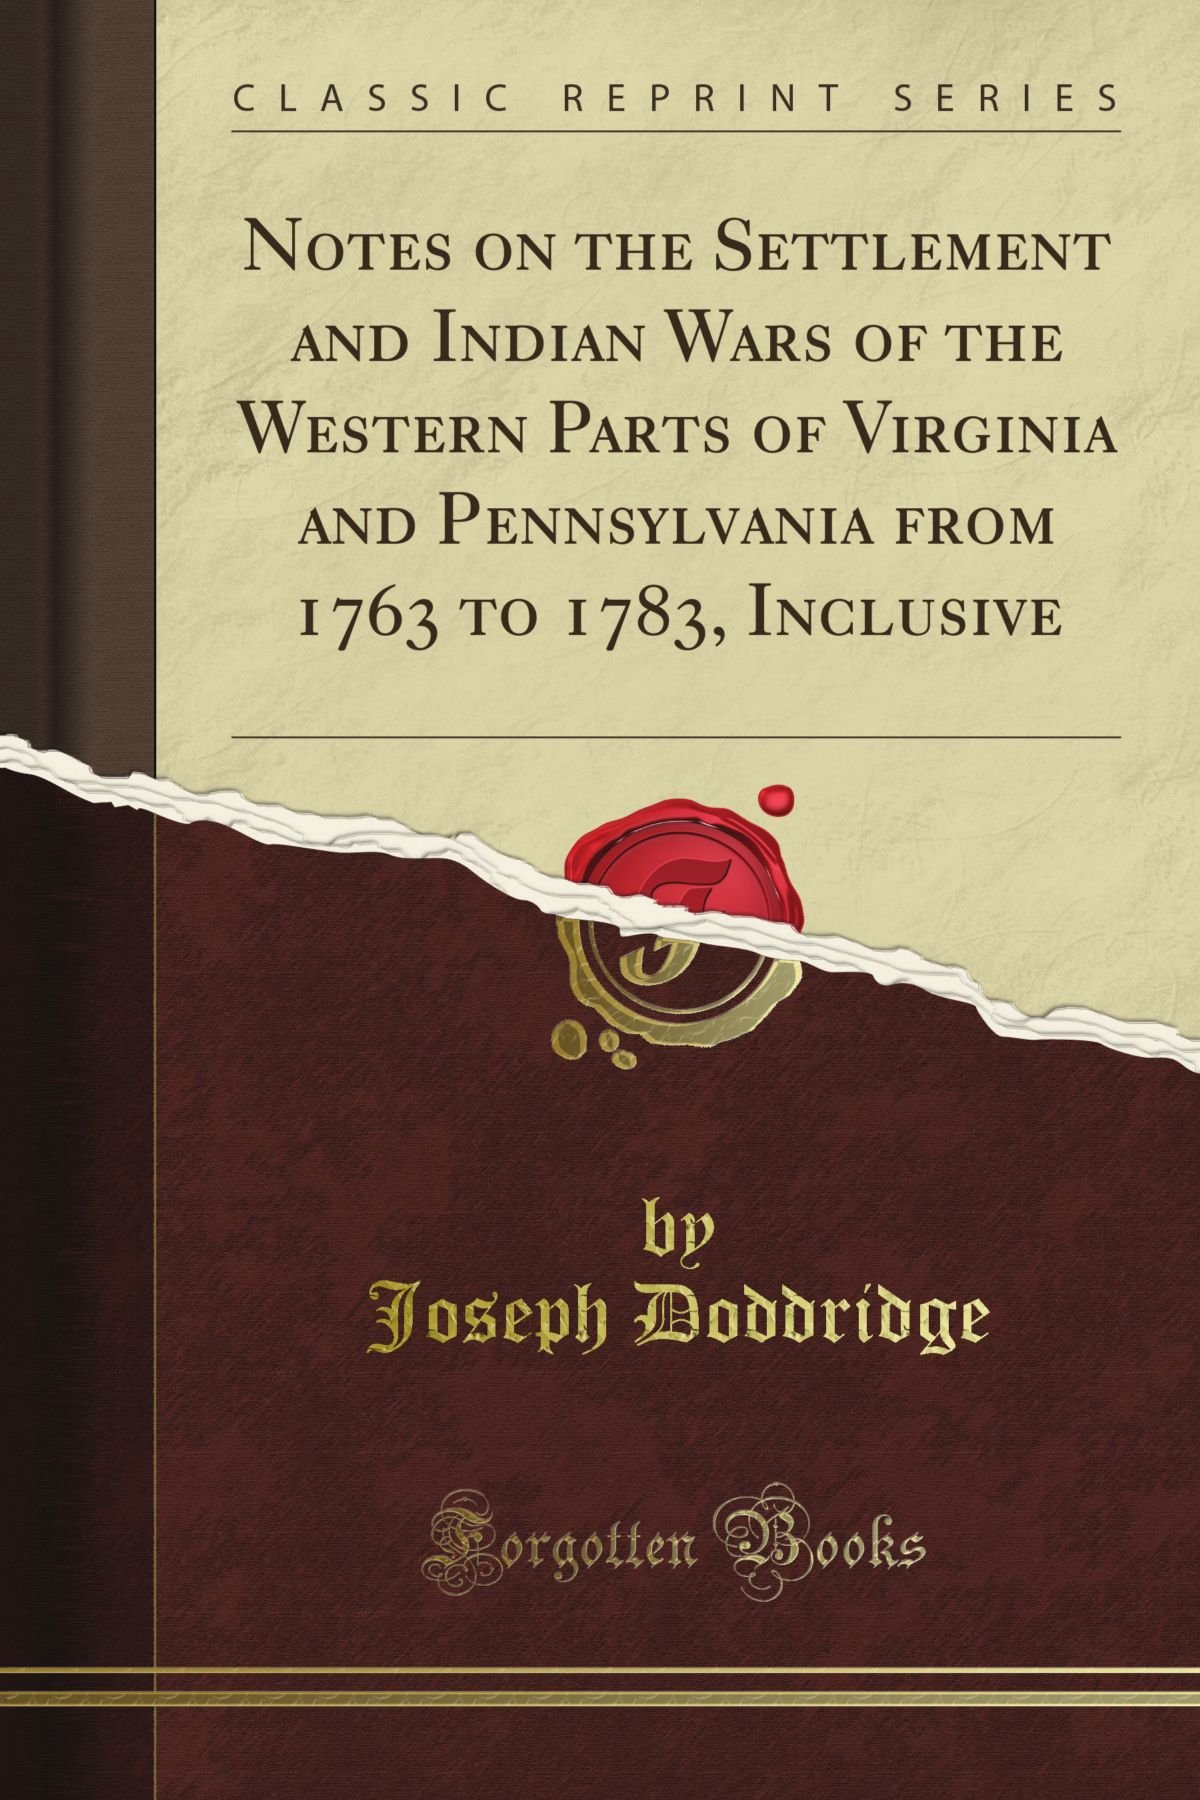 Notes on the Settlement and Indian Wars of the Western Parts of Virginia and Pennsylvania from 1763 to 1783